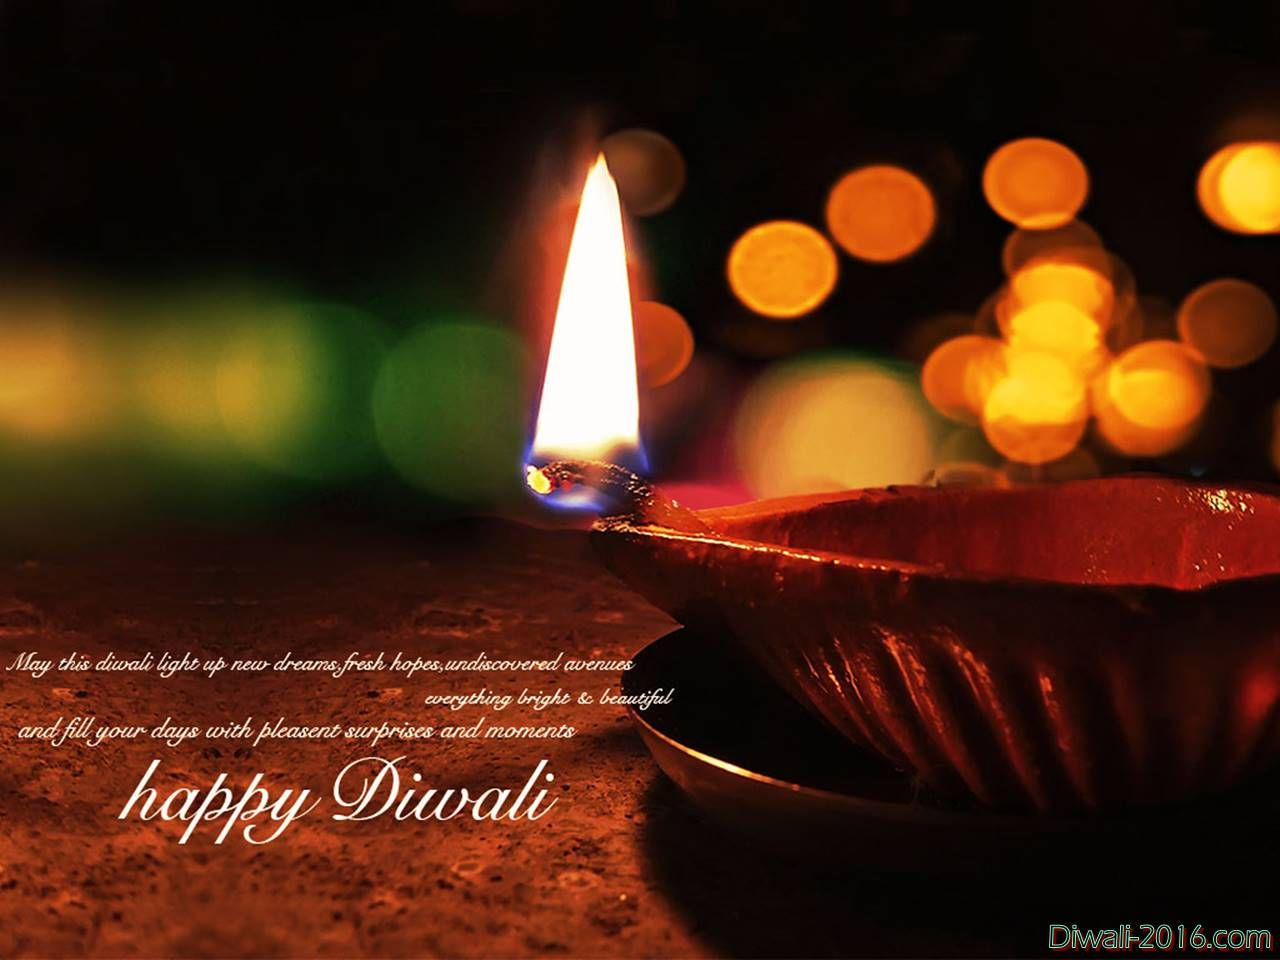 Wishing happy diwali image 31 top images of happy diwali happy diwali christmas new year valentines day quotes kristyandbryce Gallery